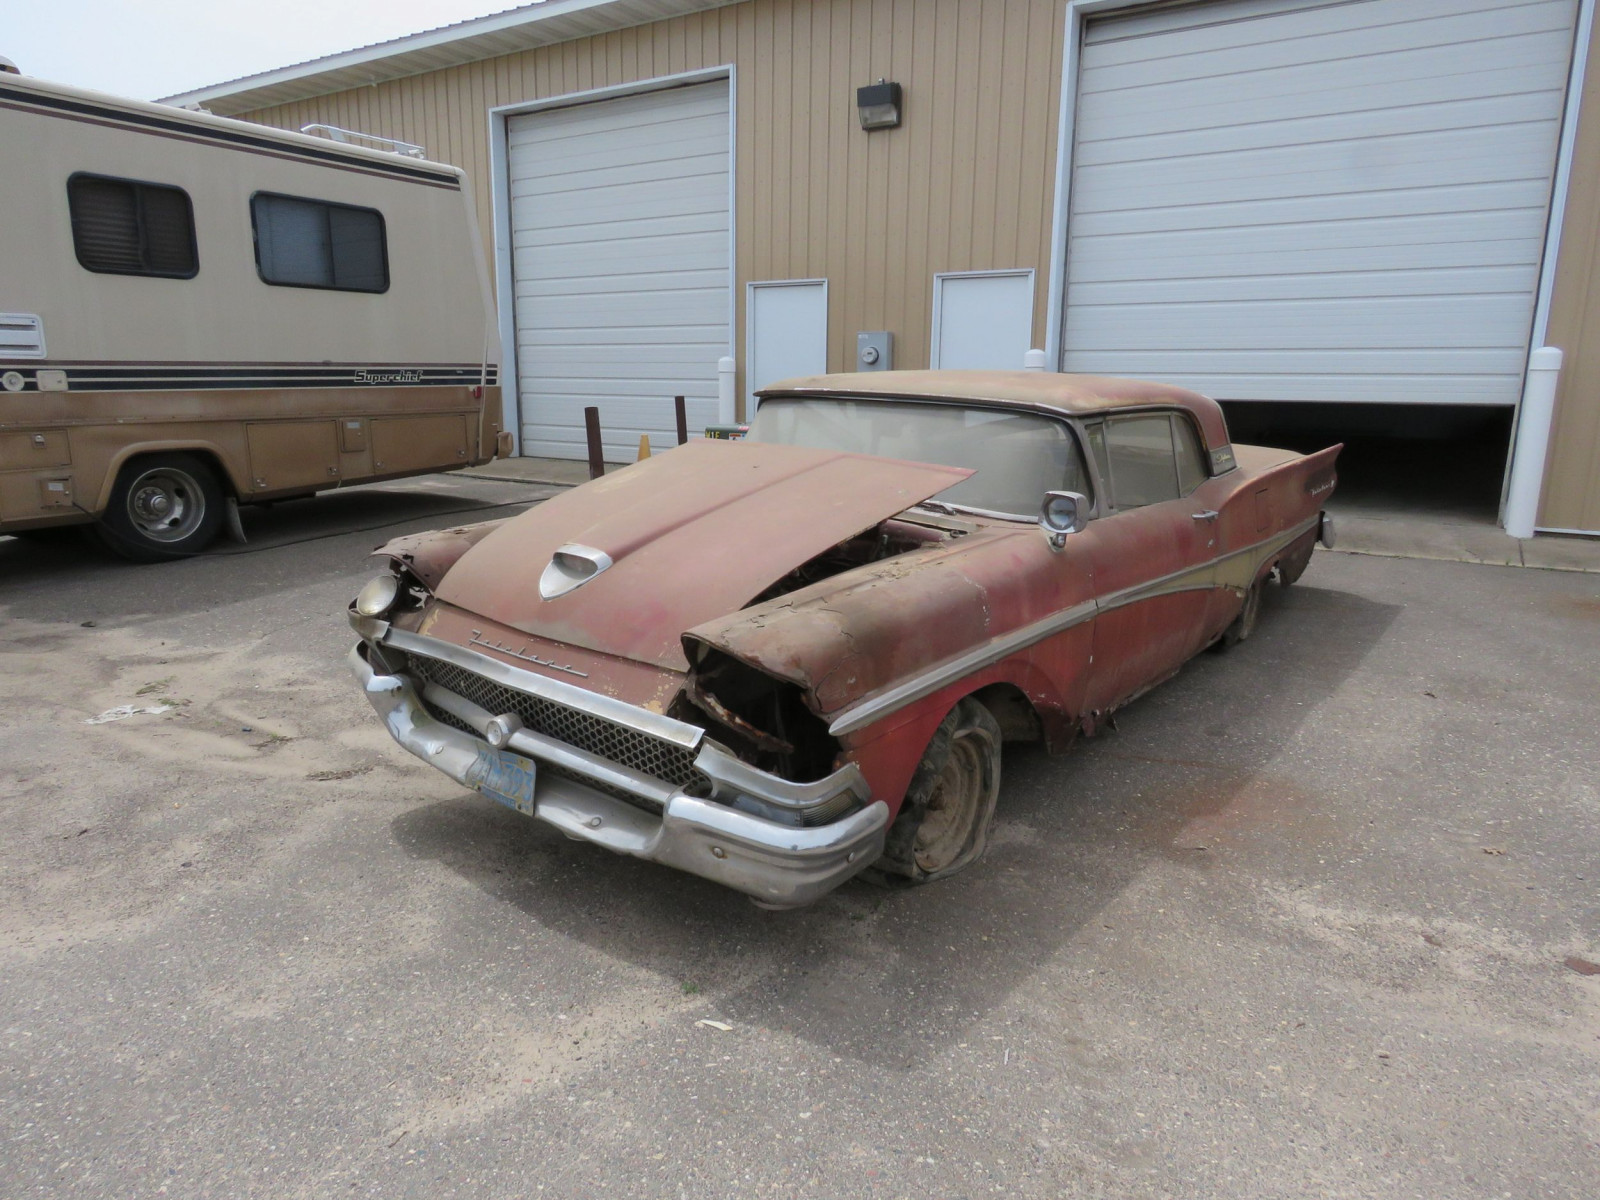 1958 Ford Fairlane 500 Retractable Hardtop Project - Image 1